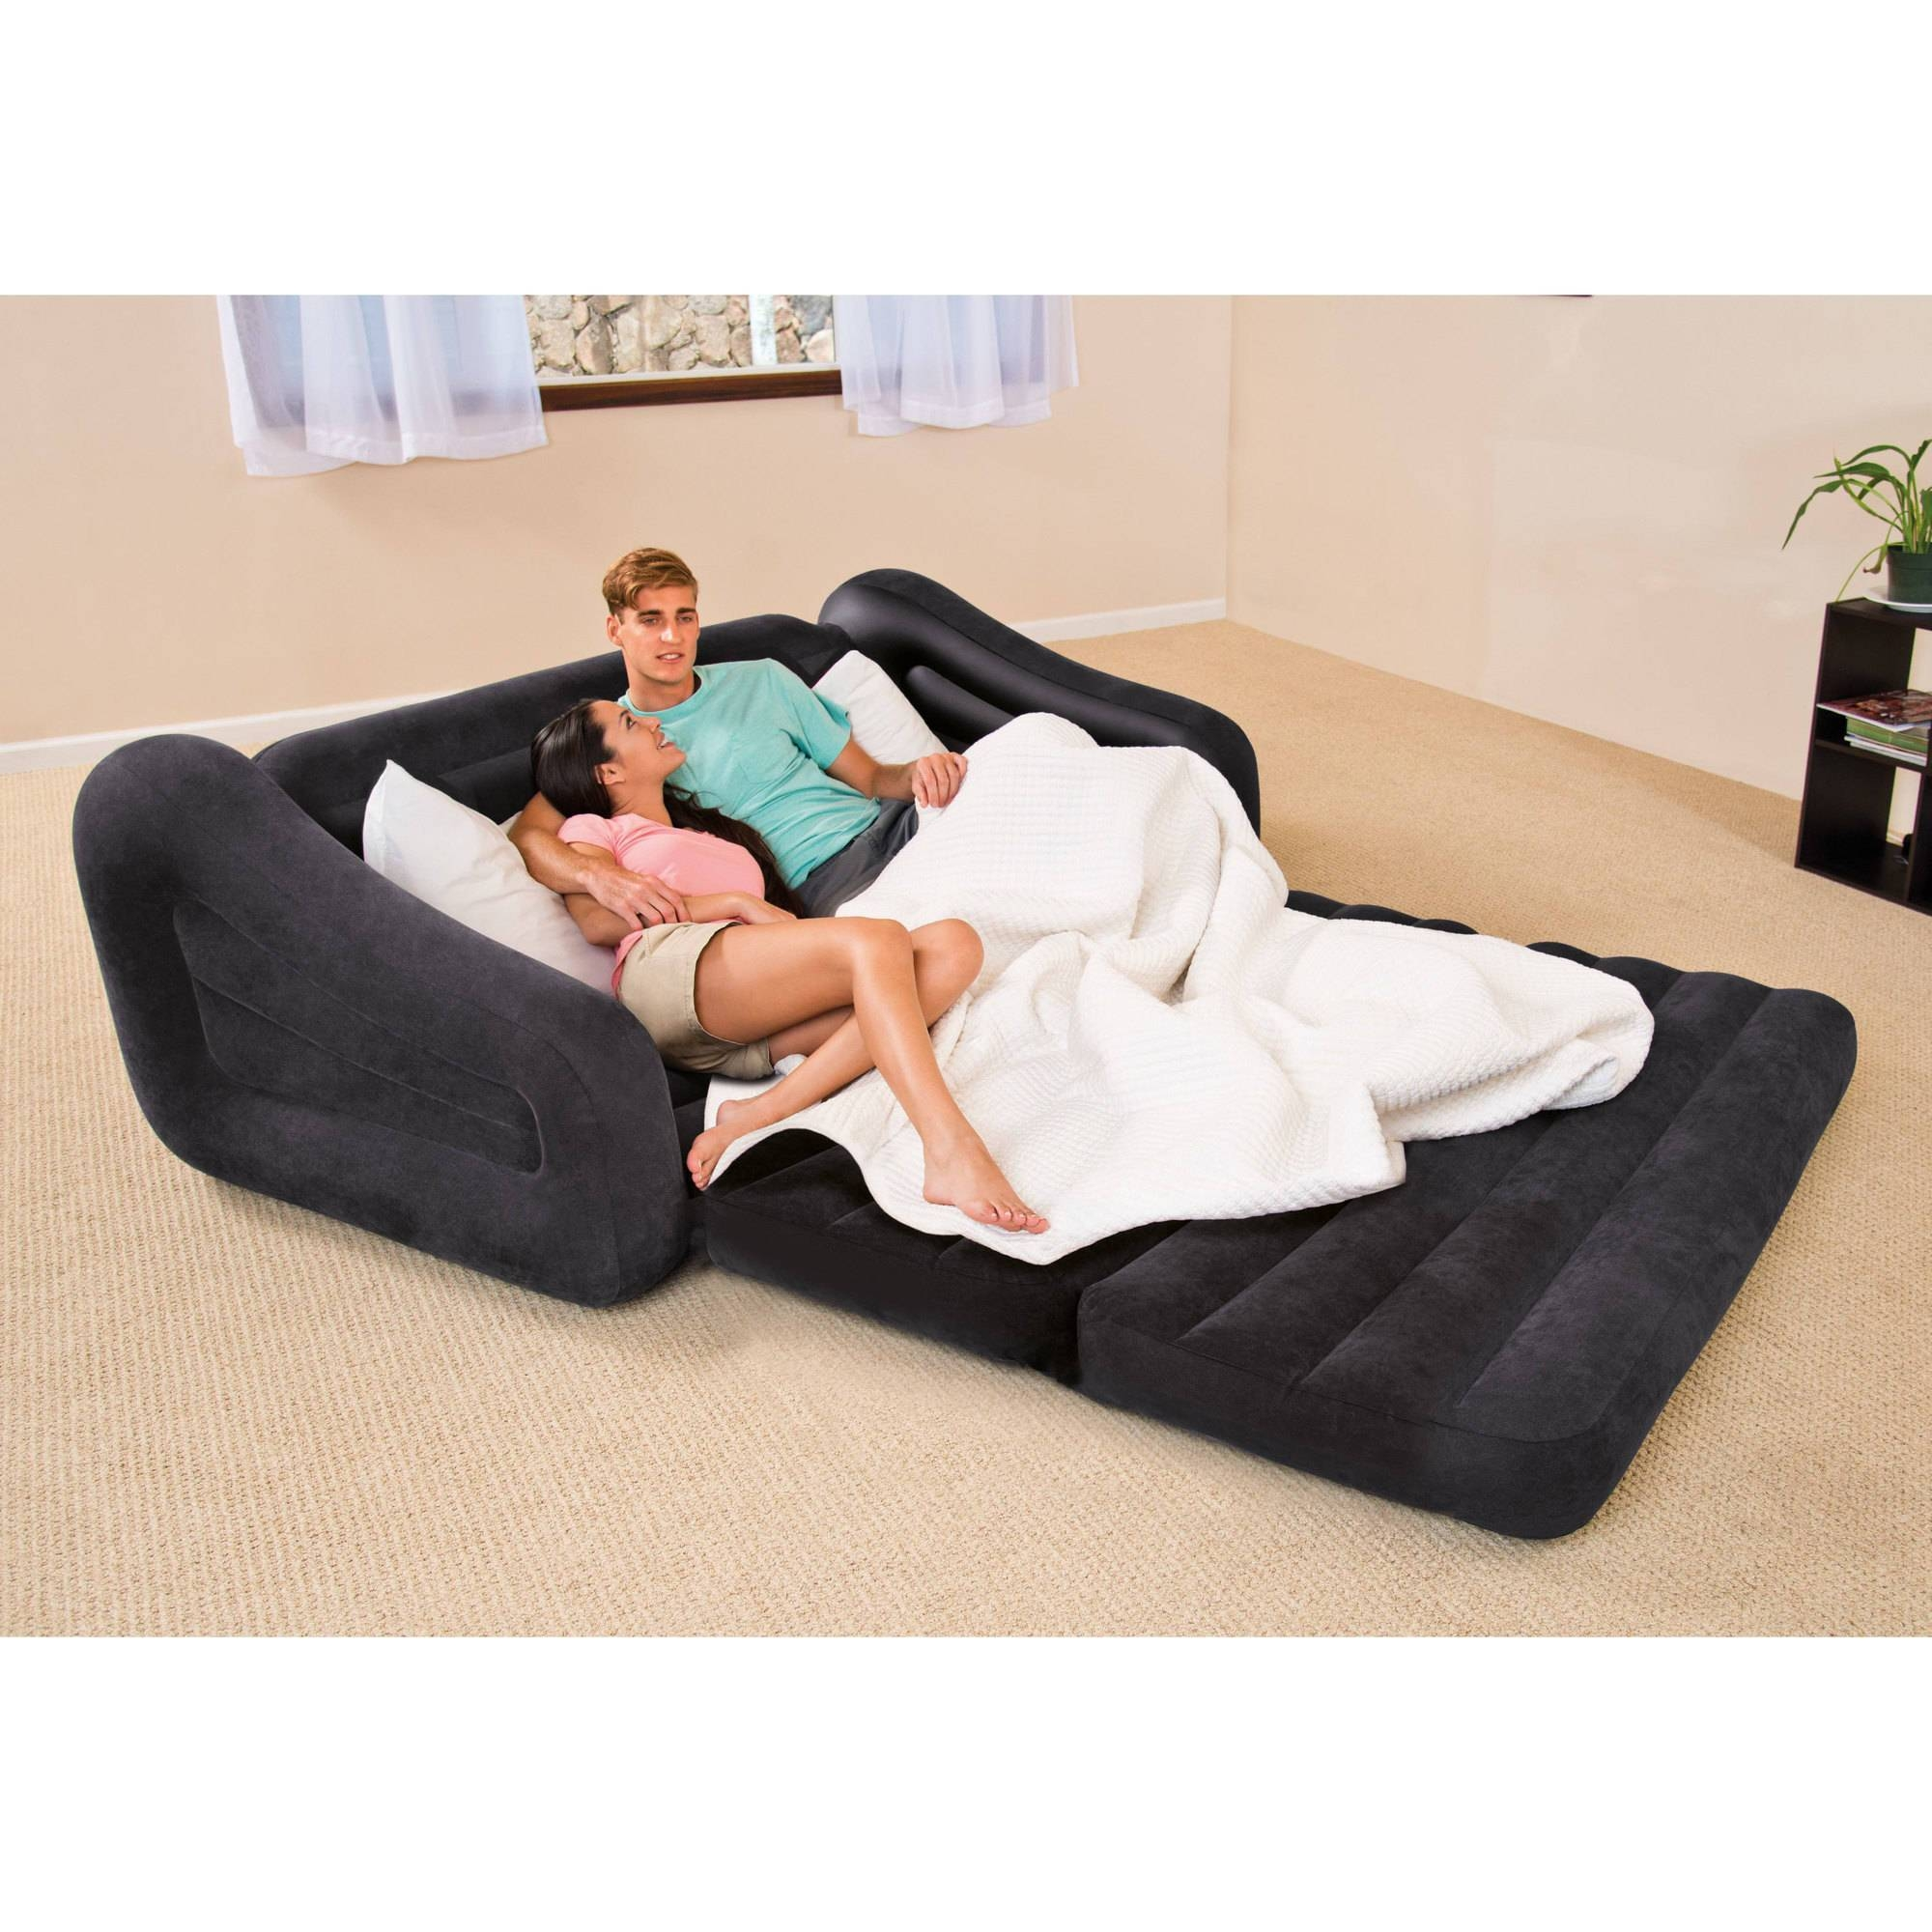 Intex Queen Inflatable Pull Out Sofa Bed – Walmart For Intex Inflatable Sofas (View 7 of 15)